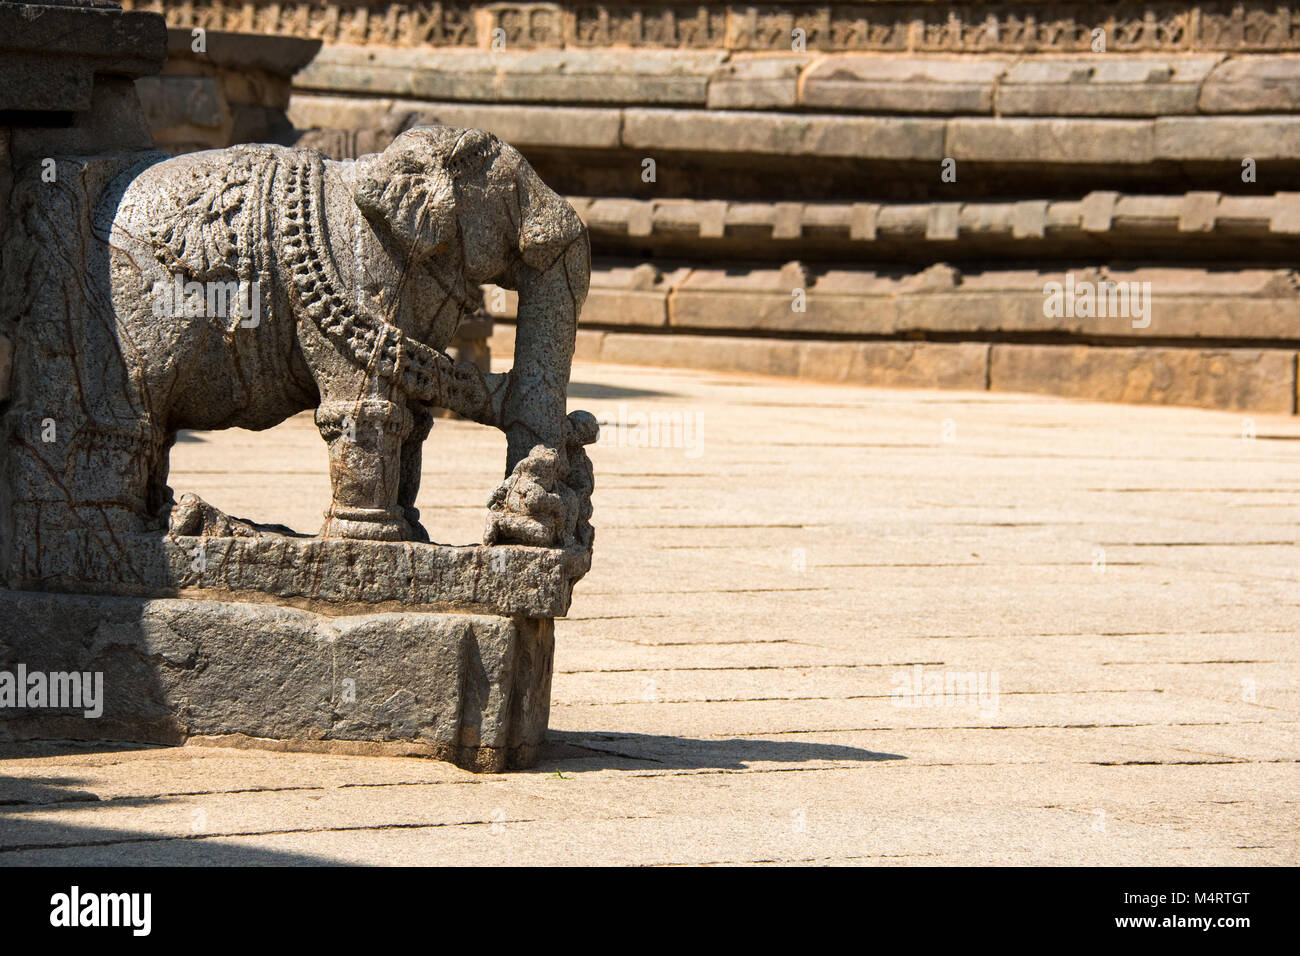 Temple idols stock photos images alamy